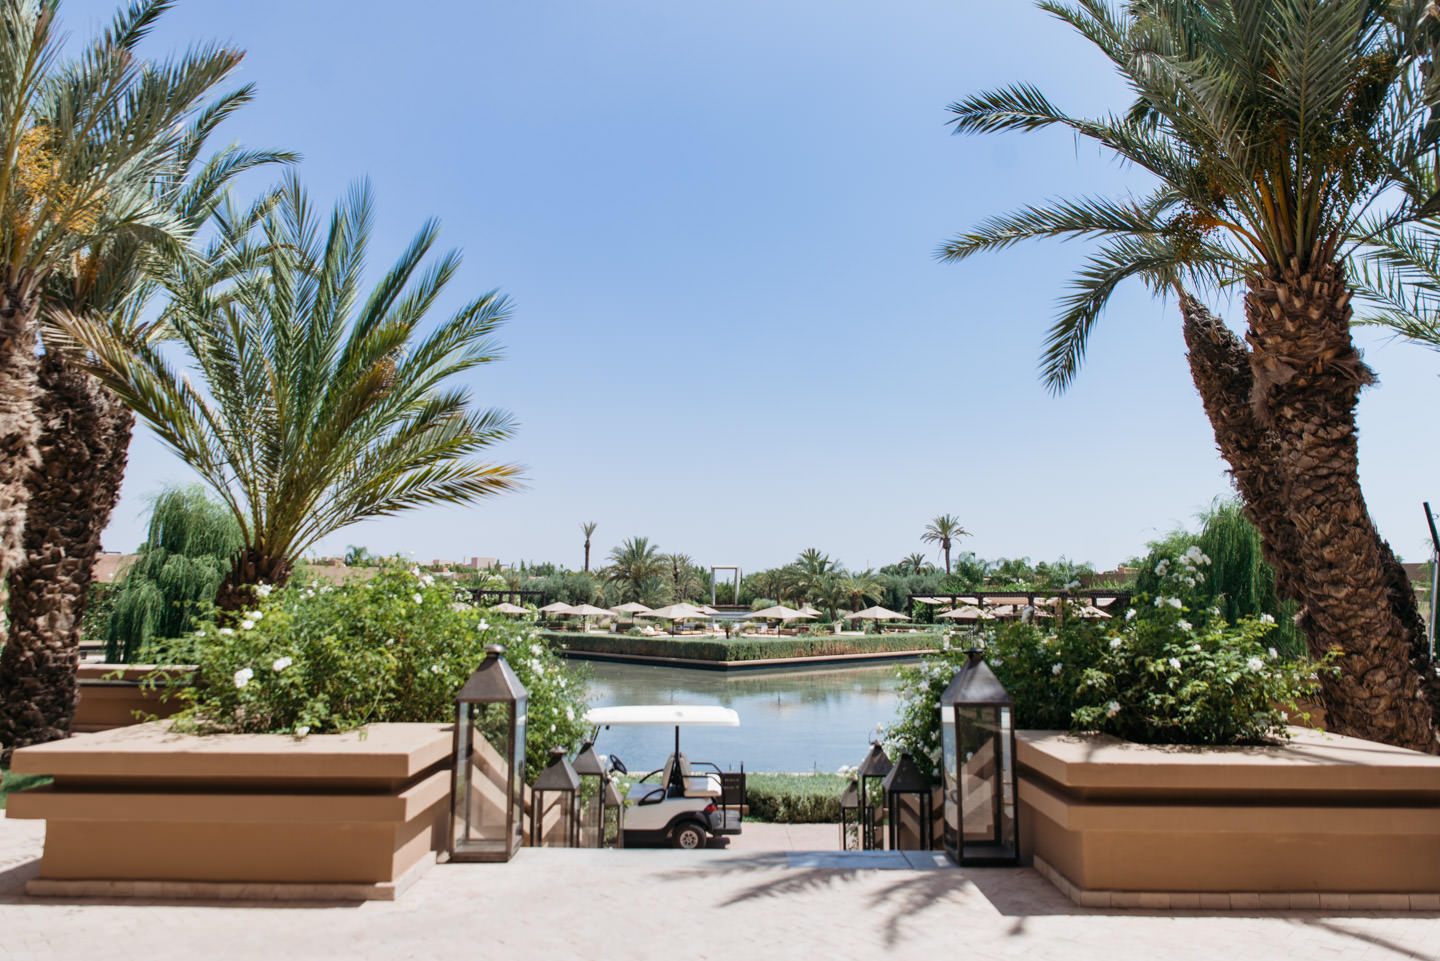 Blog-Mode-And-The-City-Lifestyle-Le-Madarin-Oriental-Marrakech-11